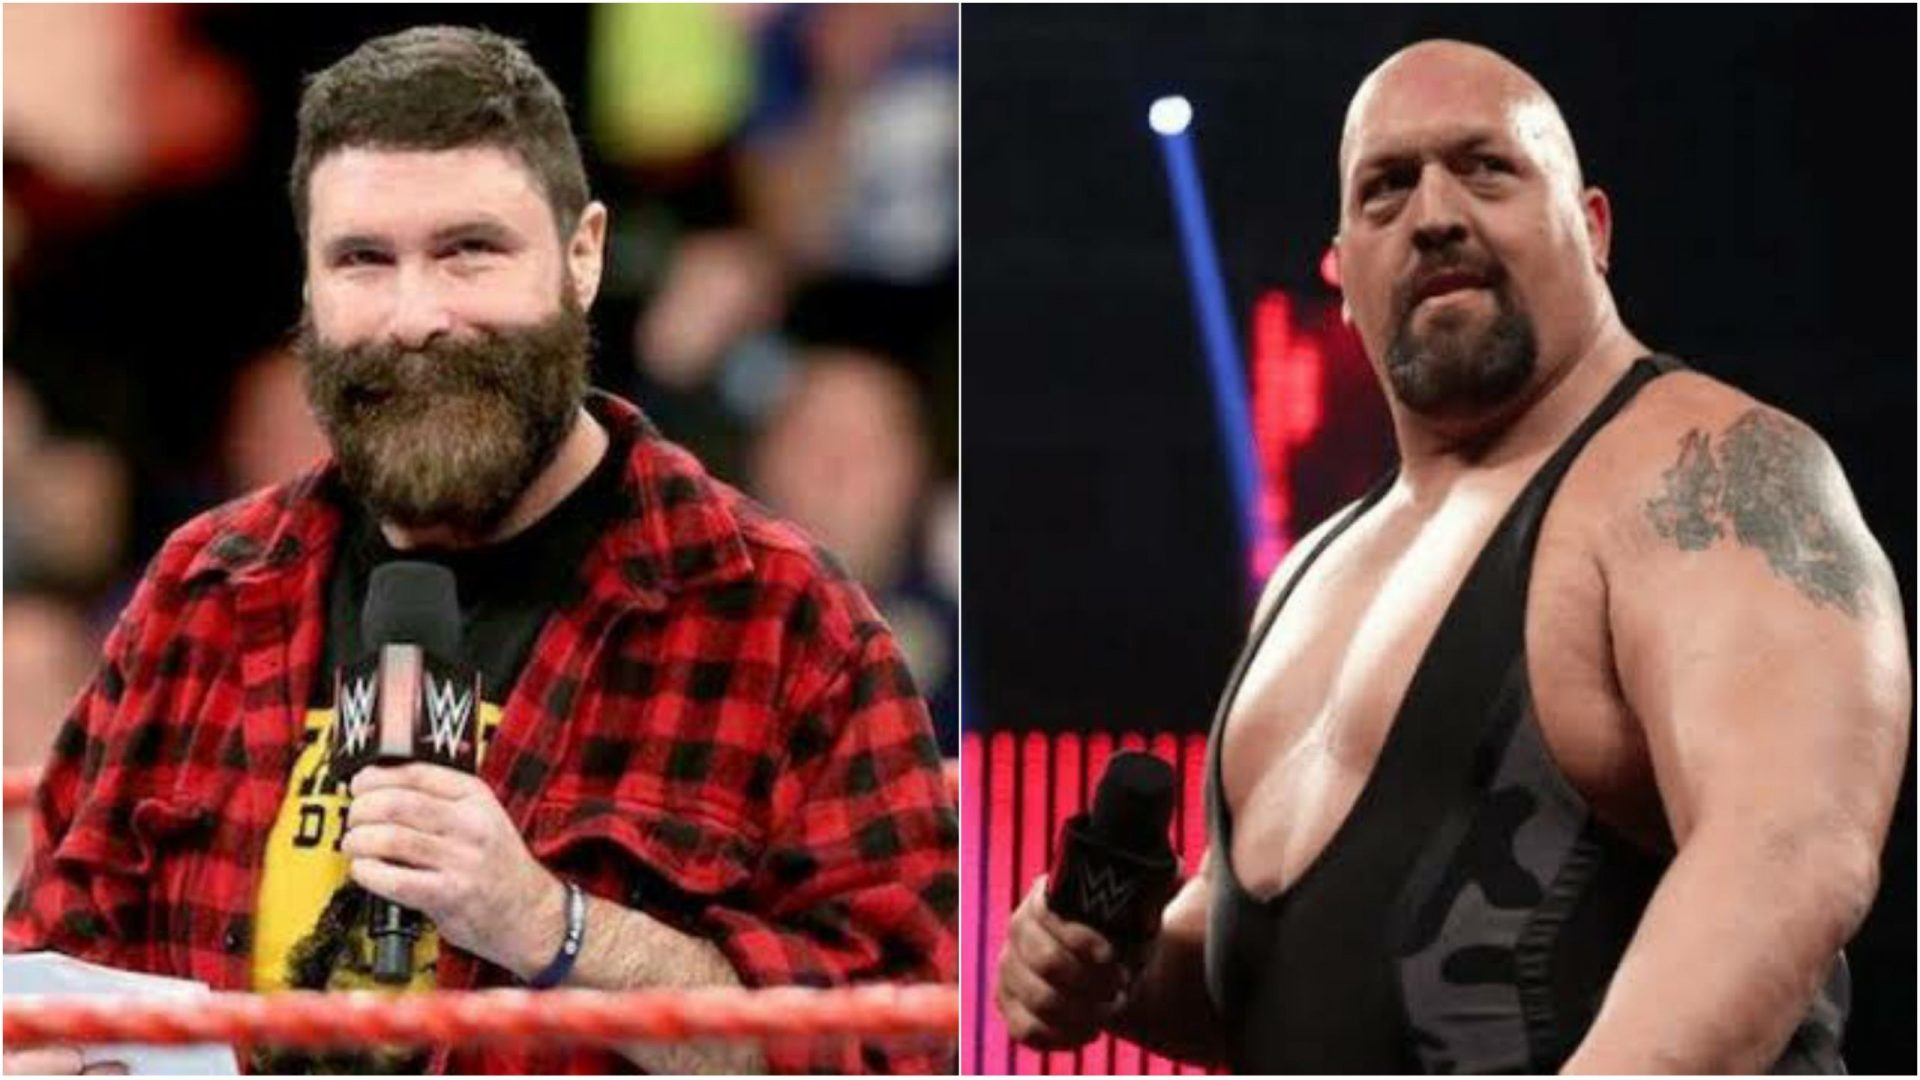 Mick Foley reveals possible reason for Big Show joining AEW - THE SPORTS ROOM